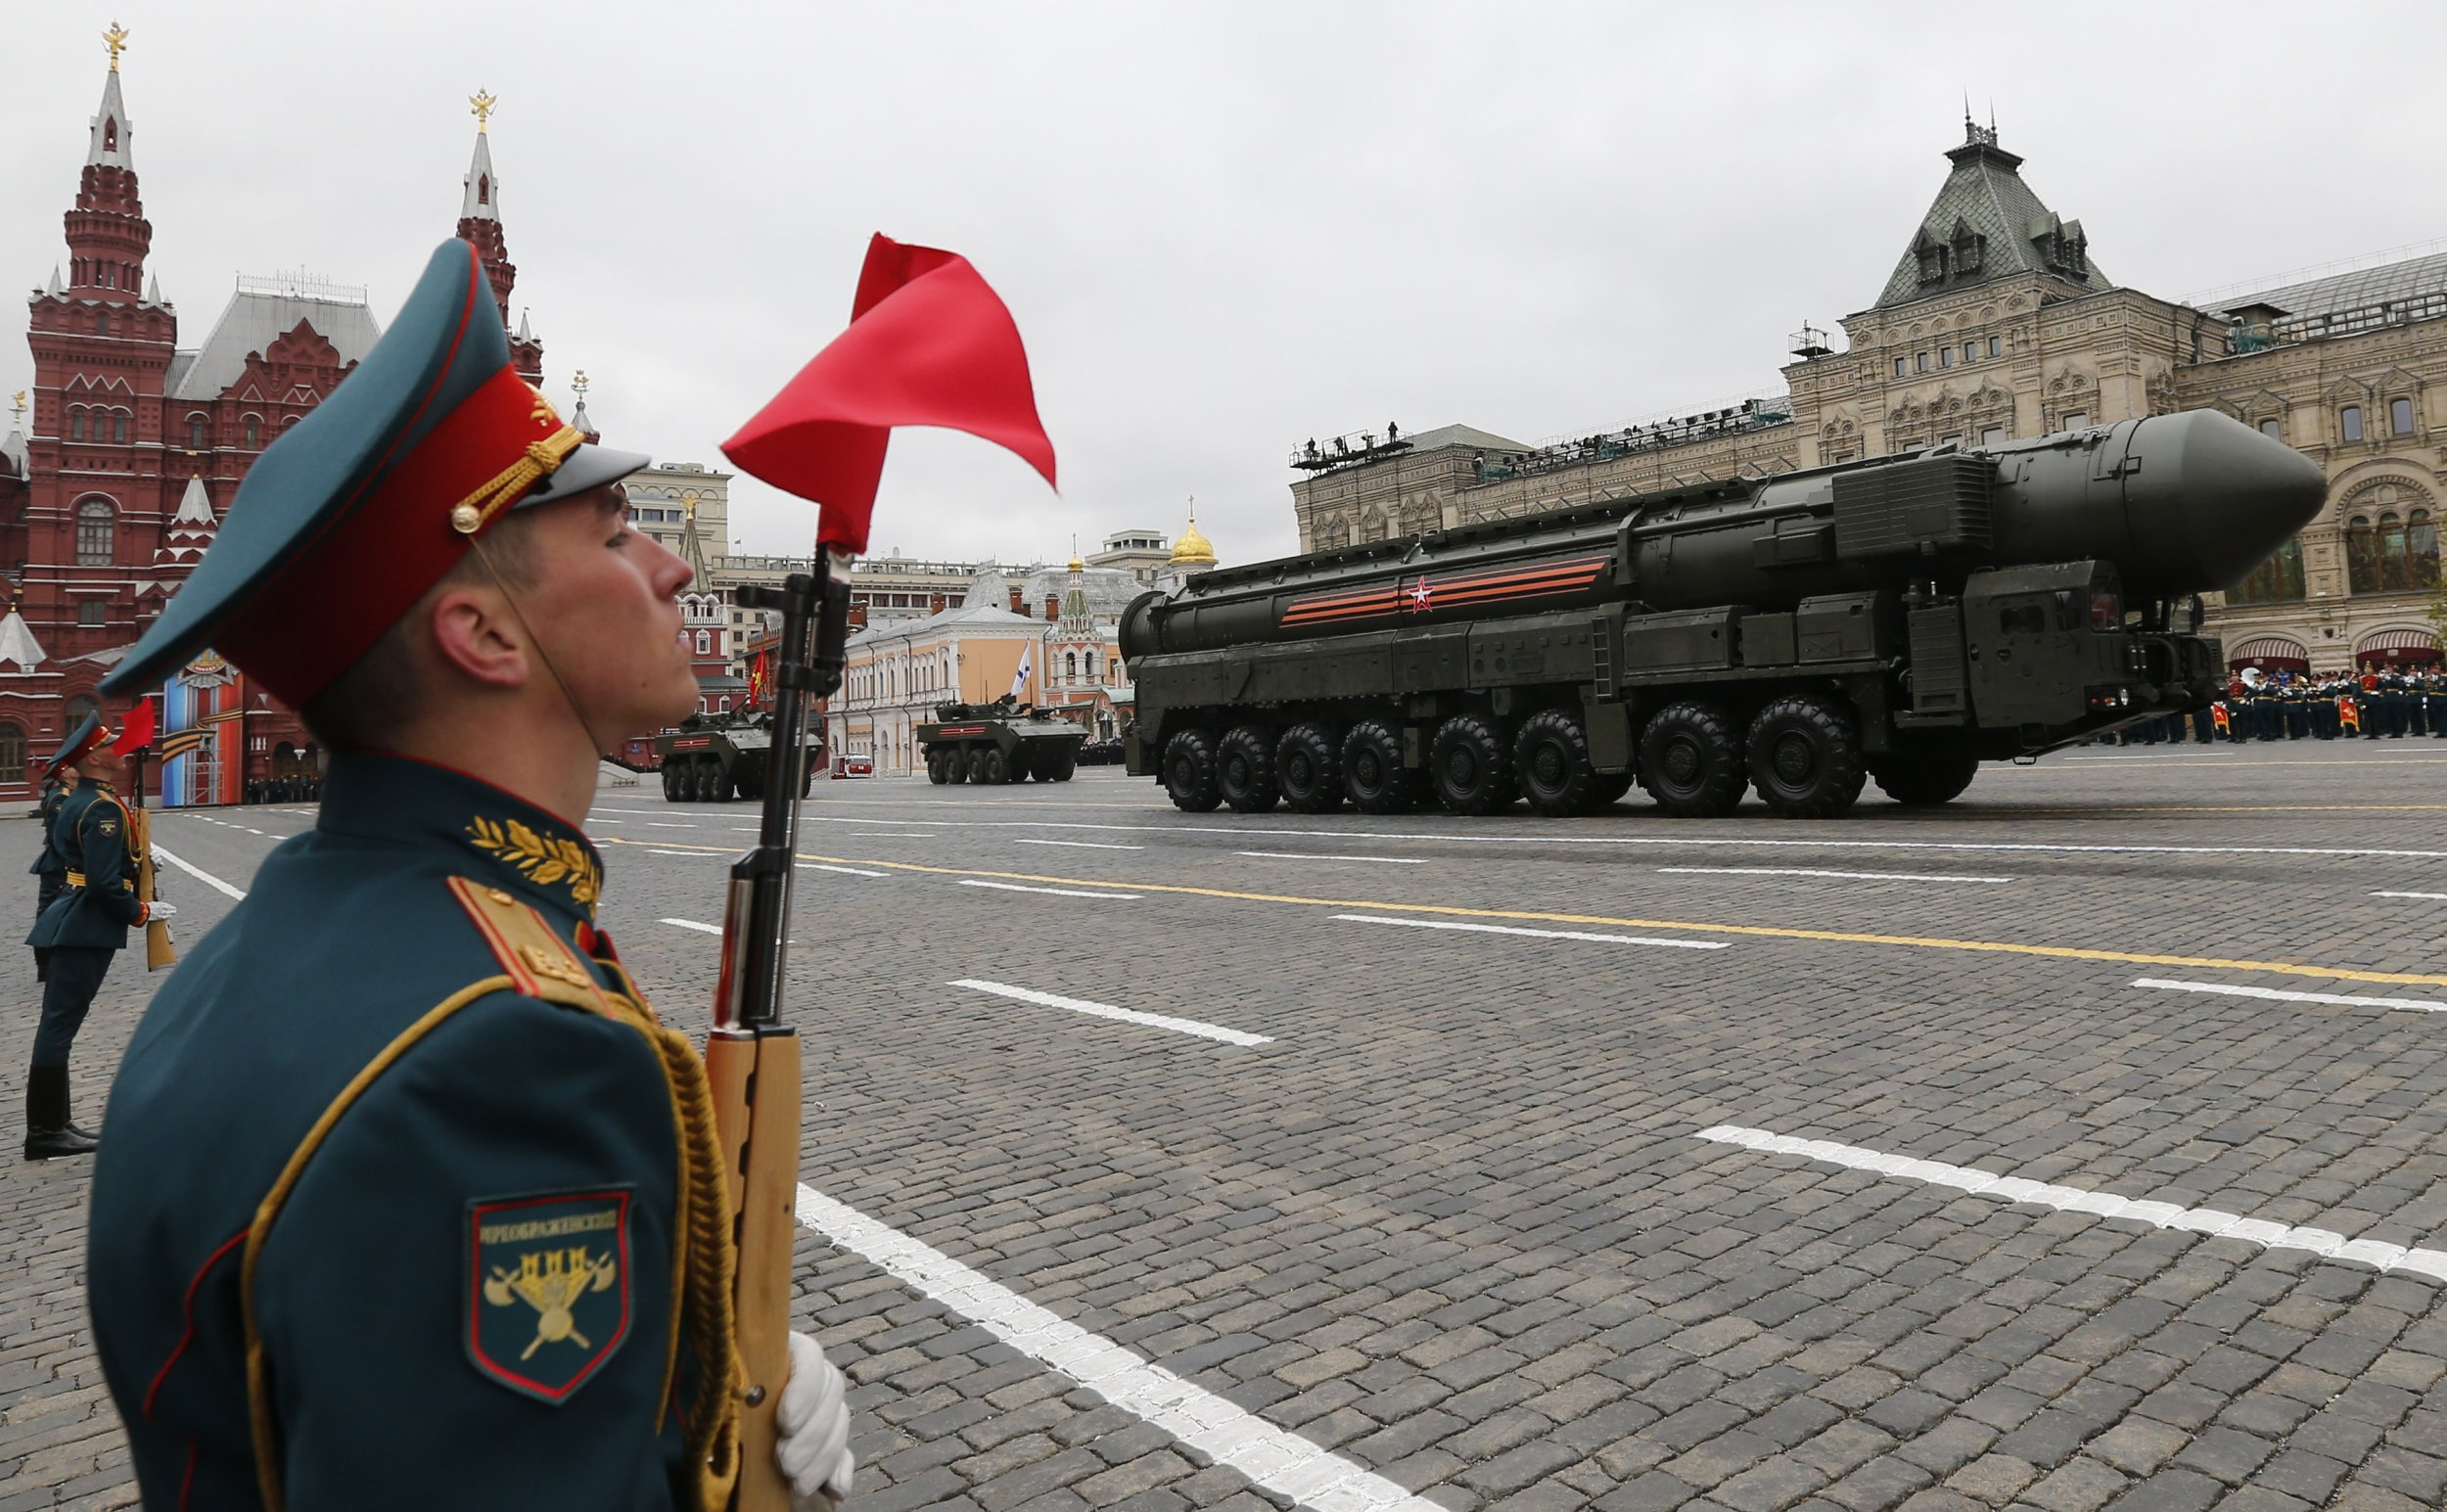 Biggest Threats to U.S. Are Nuclear War With Russia ...